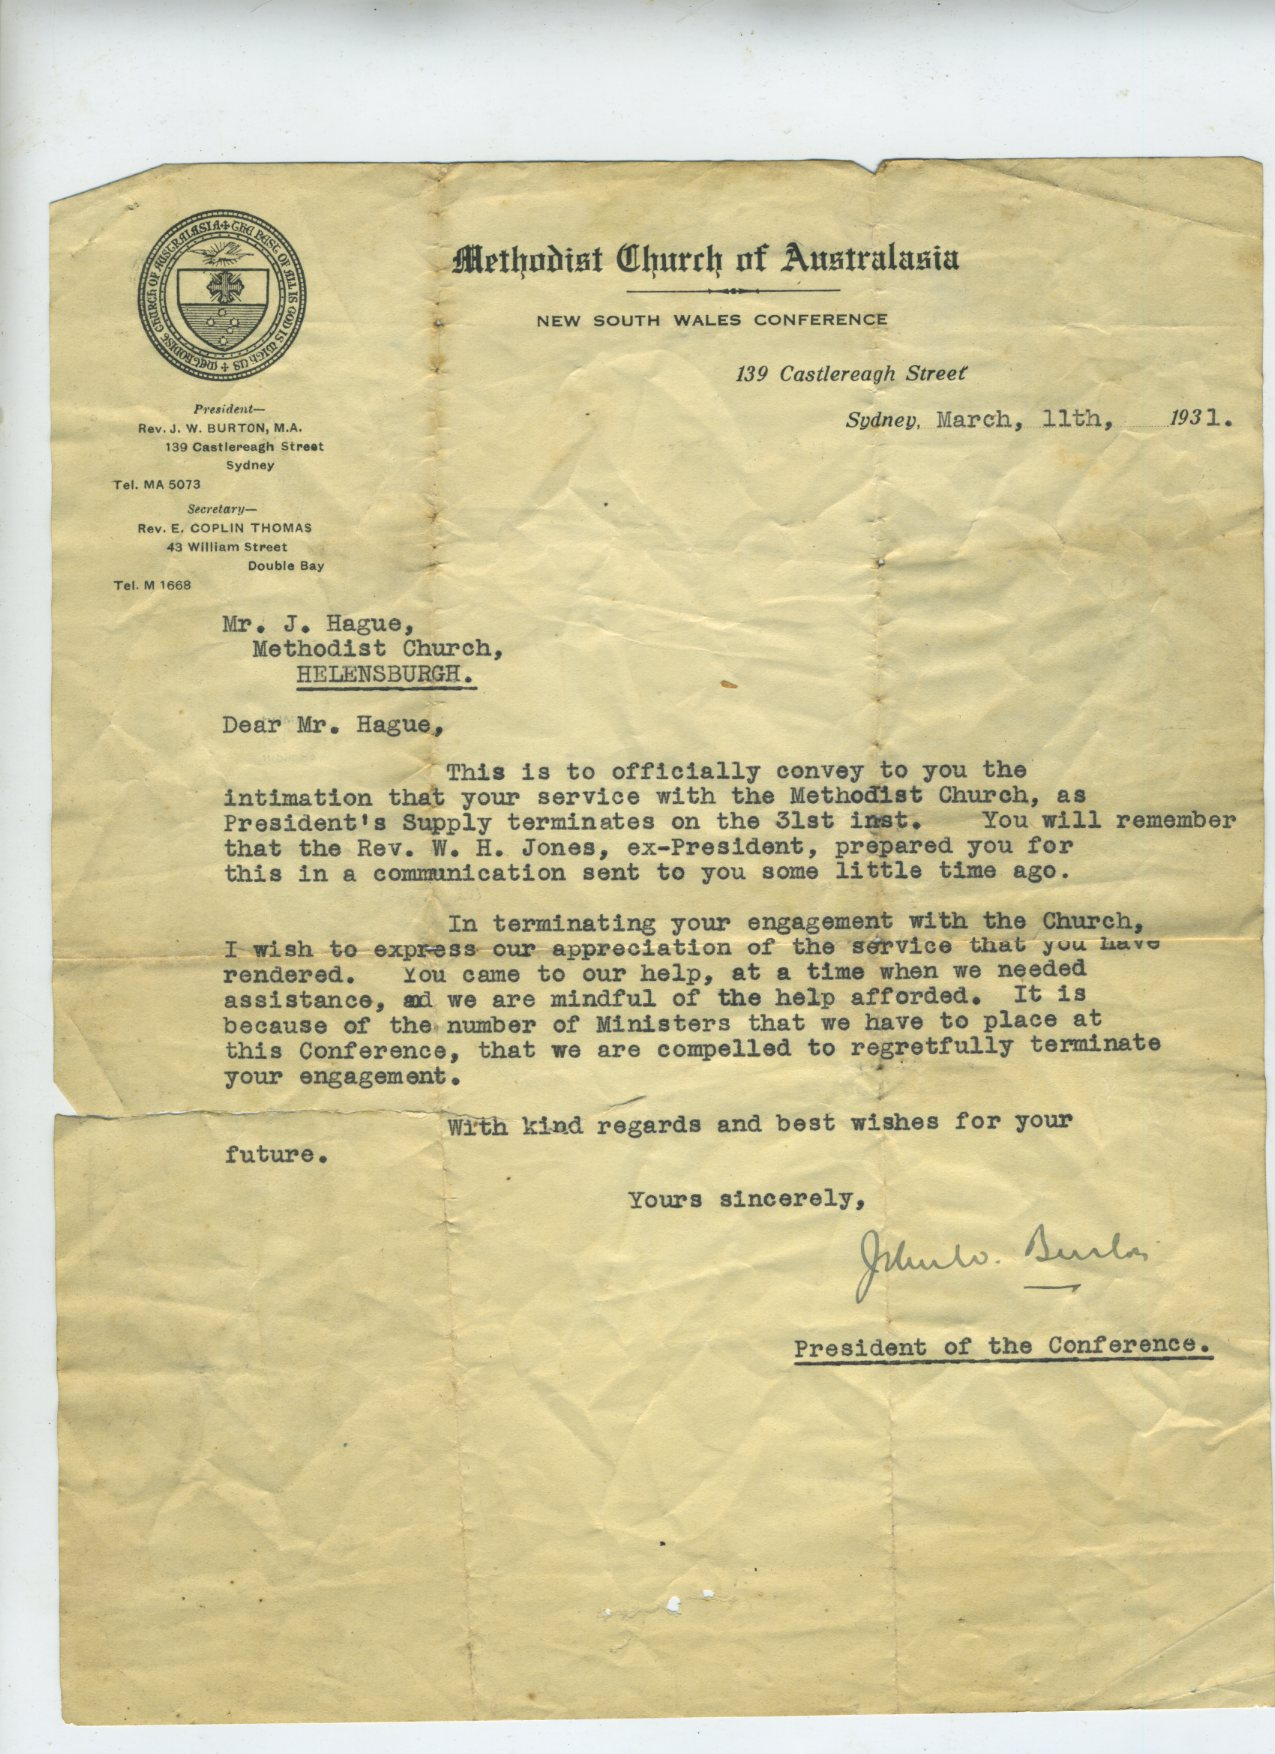 Methodist Church of Australasia correspondance 1931